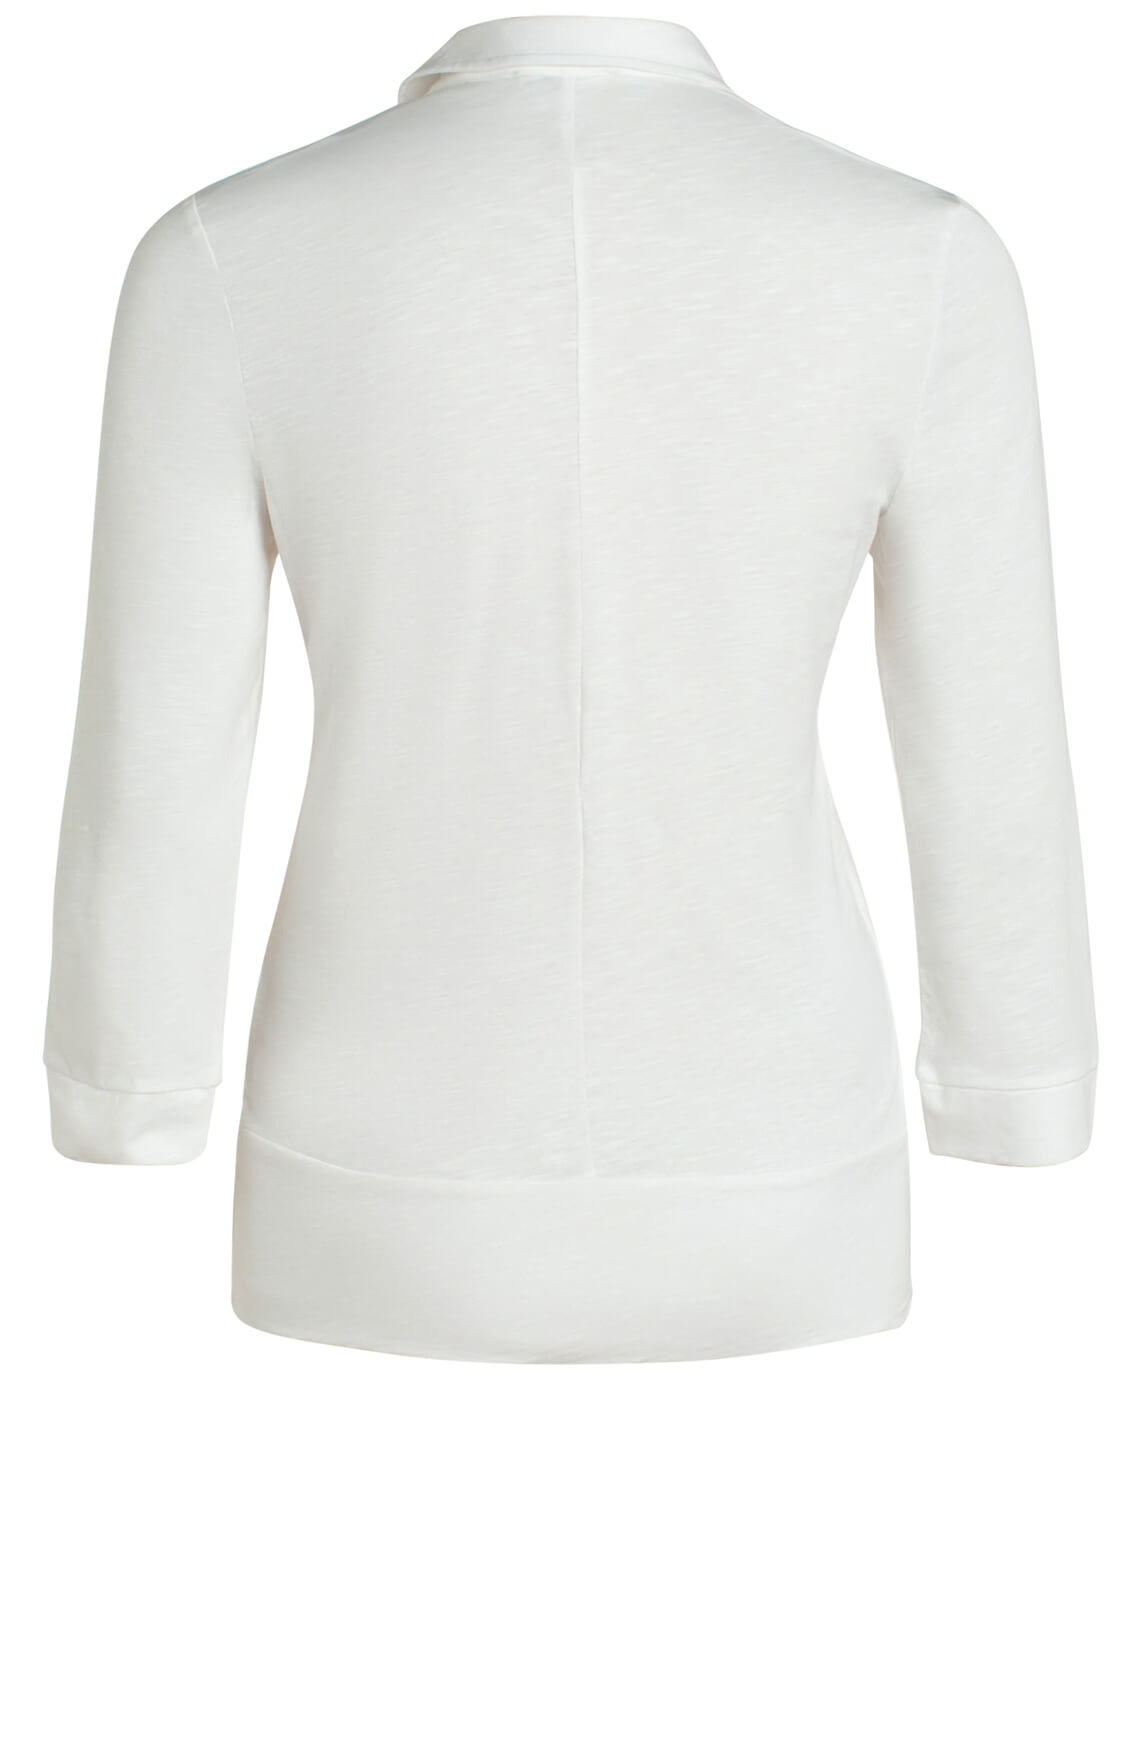 Anna Dames Blouse met knoopdetail wit